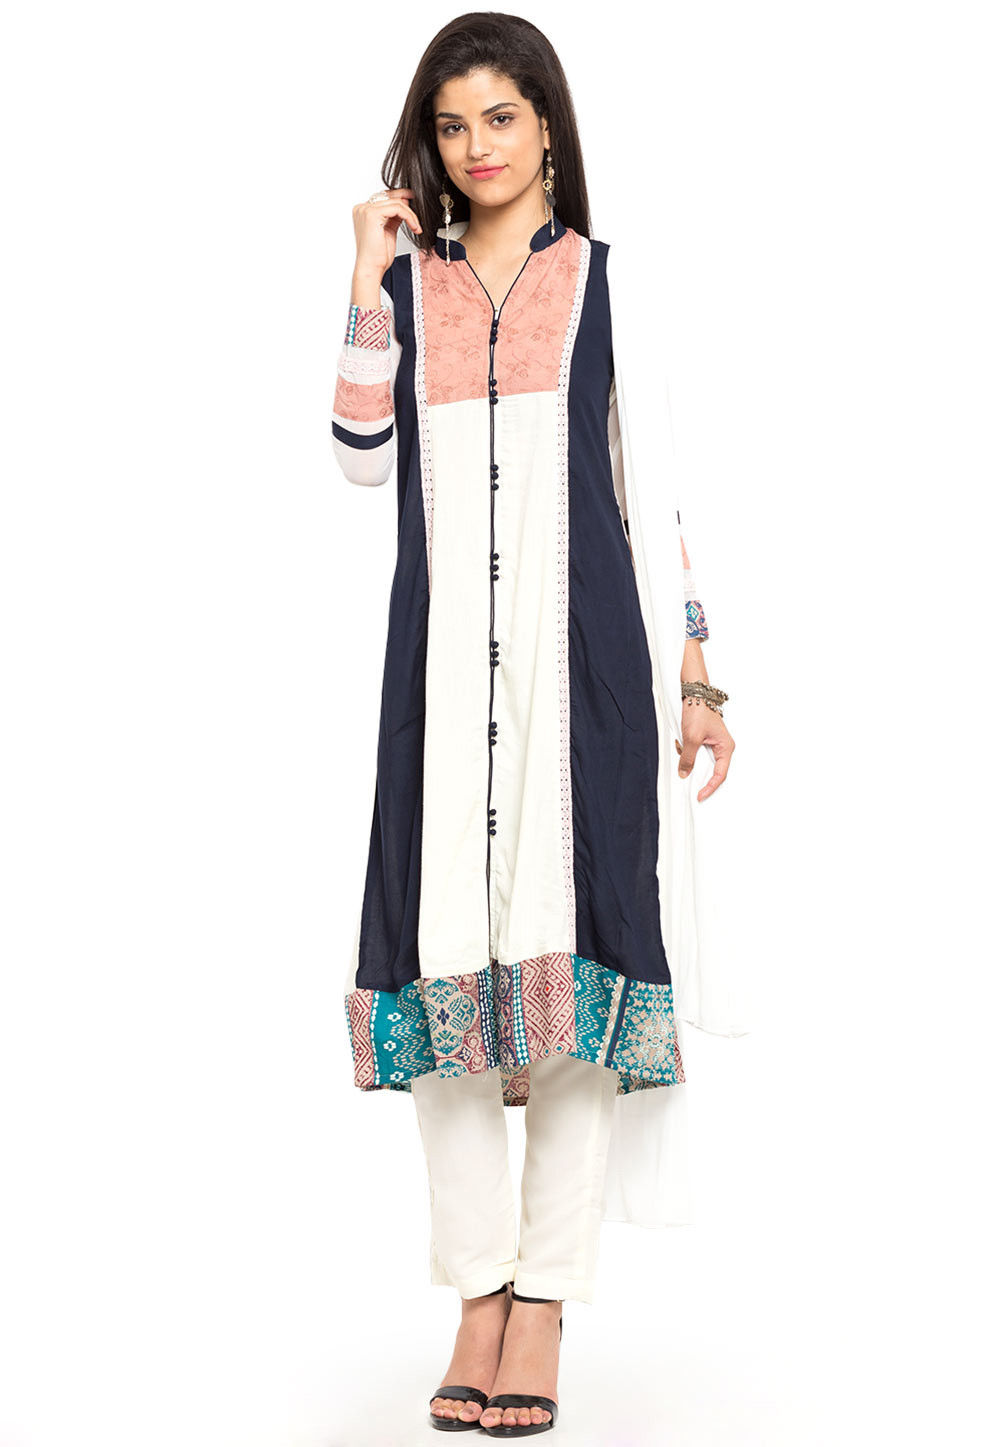 Embroidered Cotton Rayon A Line Suit in OffWhite and Black